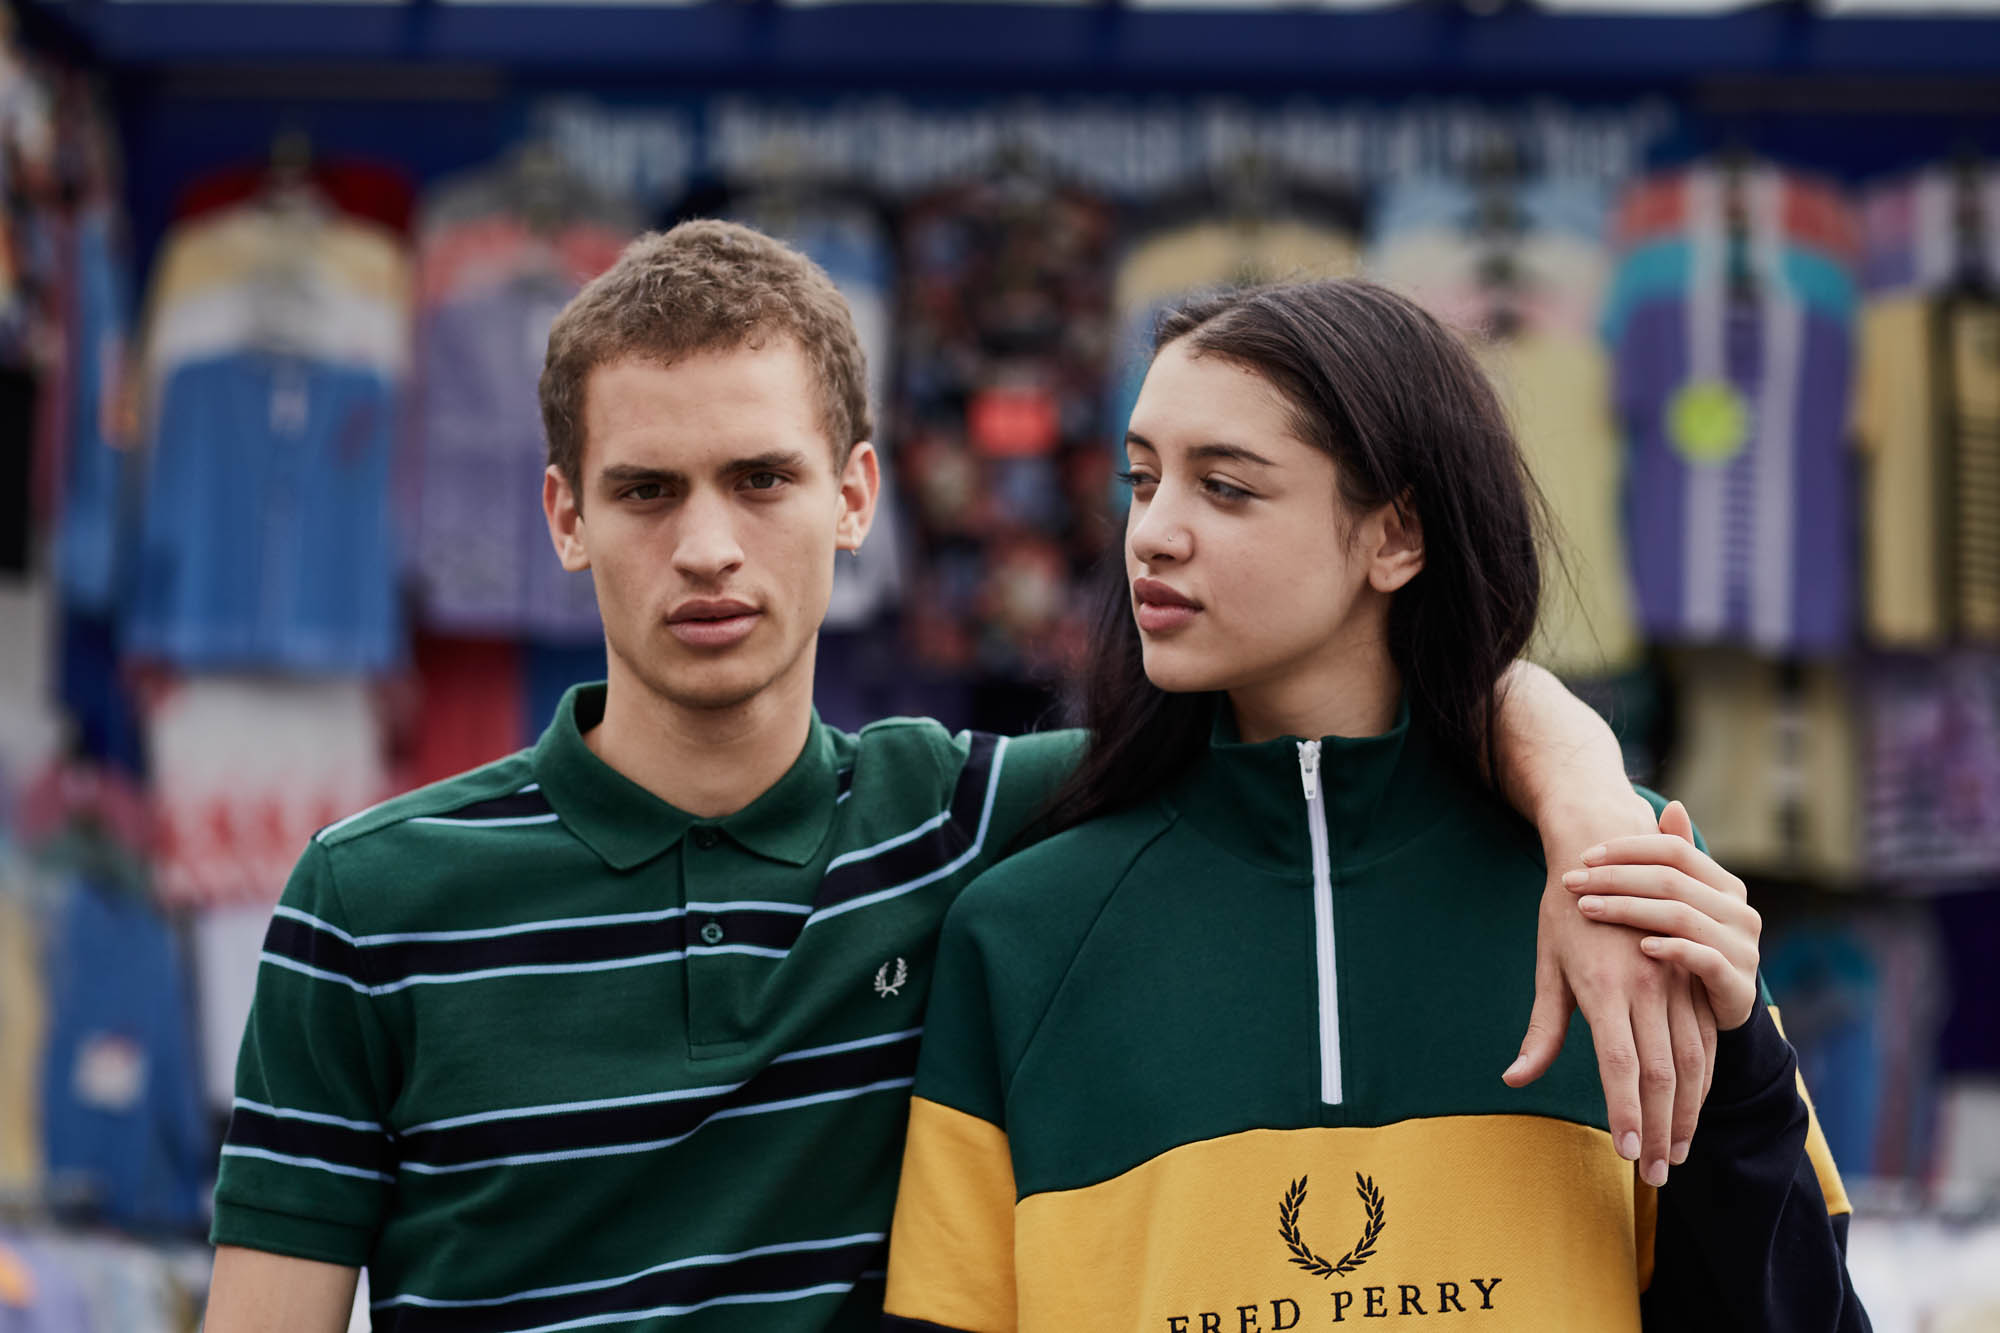 Fred Perry 'Striped' Apparel Collection – size? Exclusive